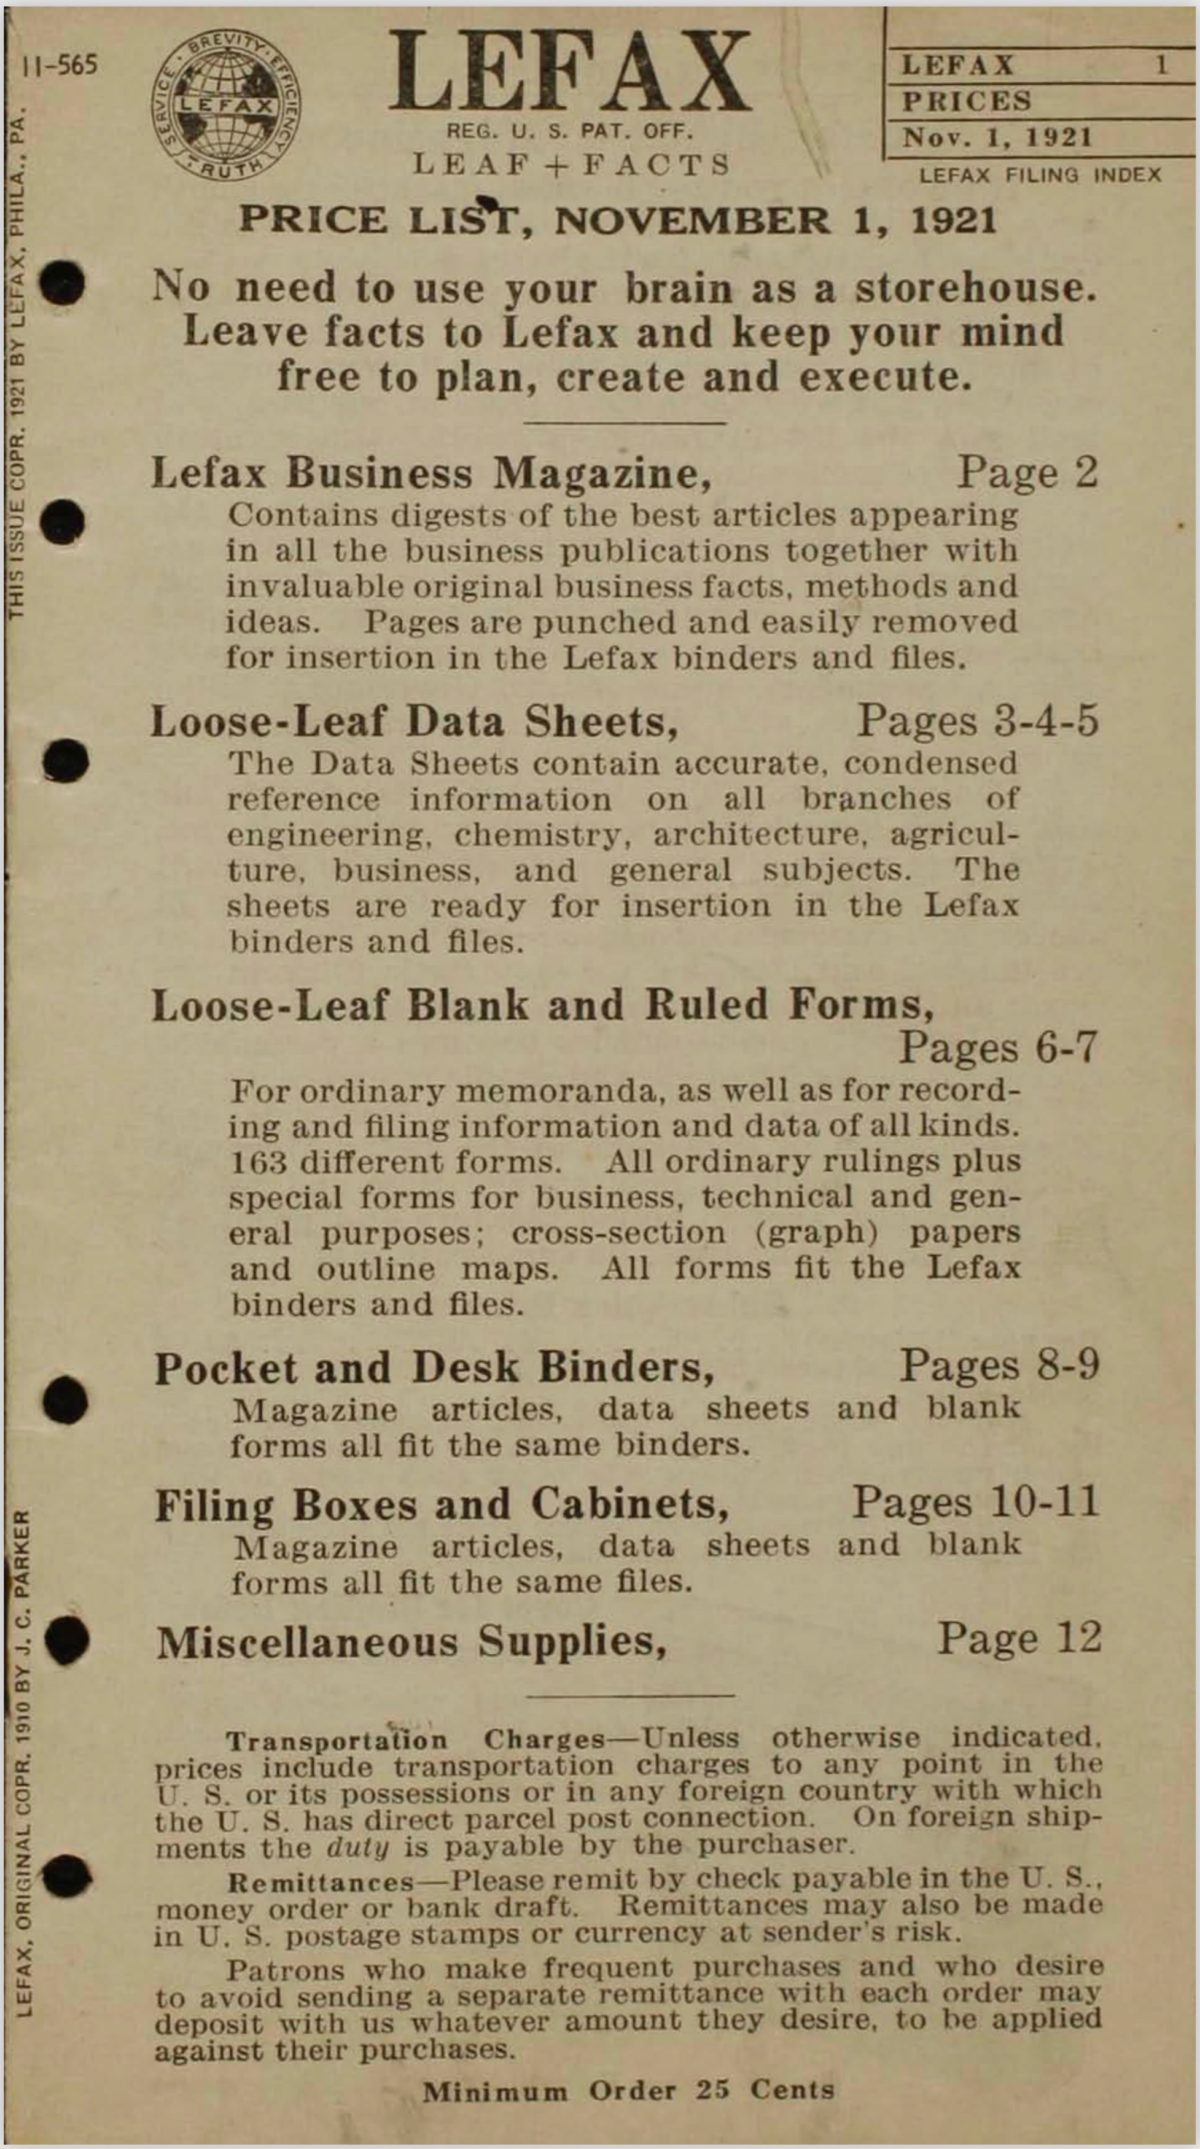 Lefax Price List 1921